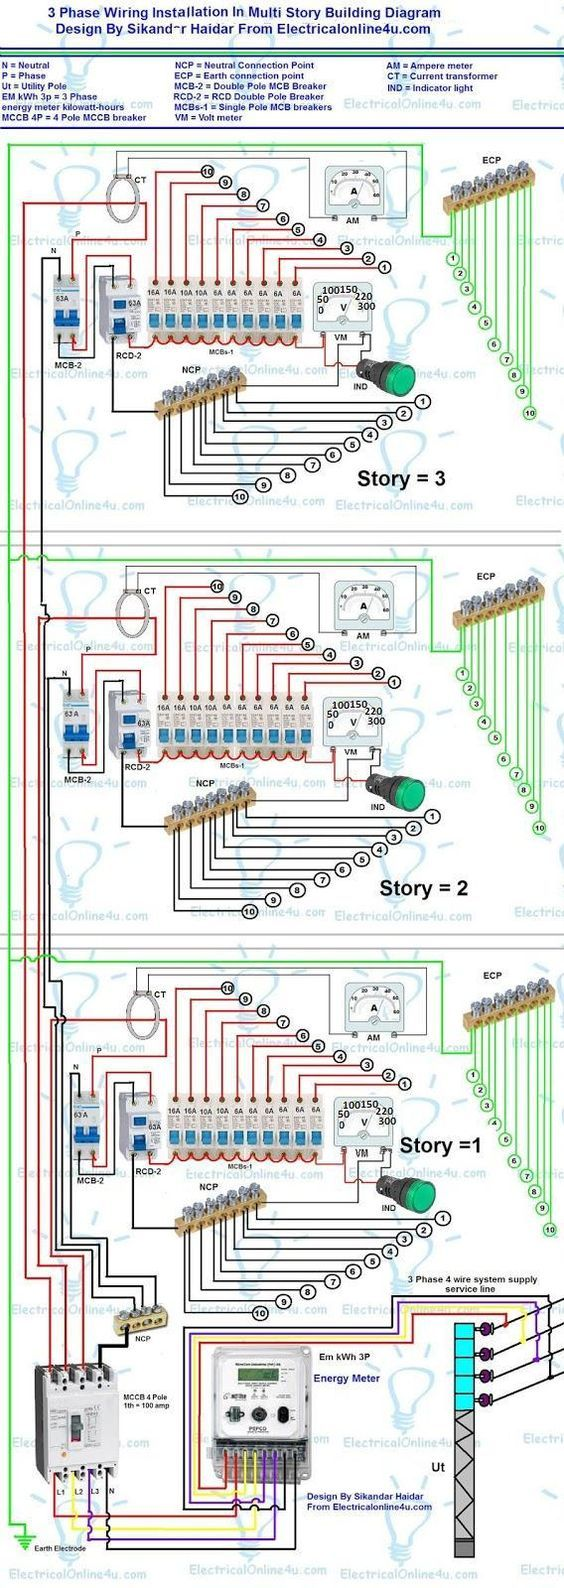 3 Phase Wiring Installation Diagram Electrical Installation Electrical Wiring